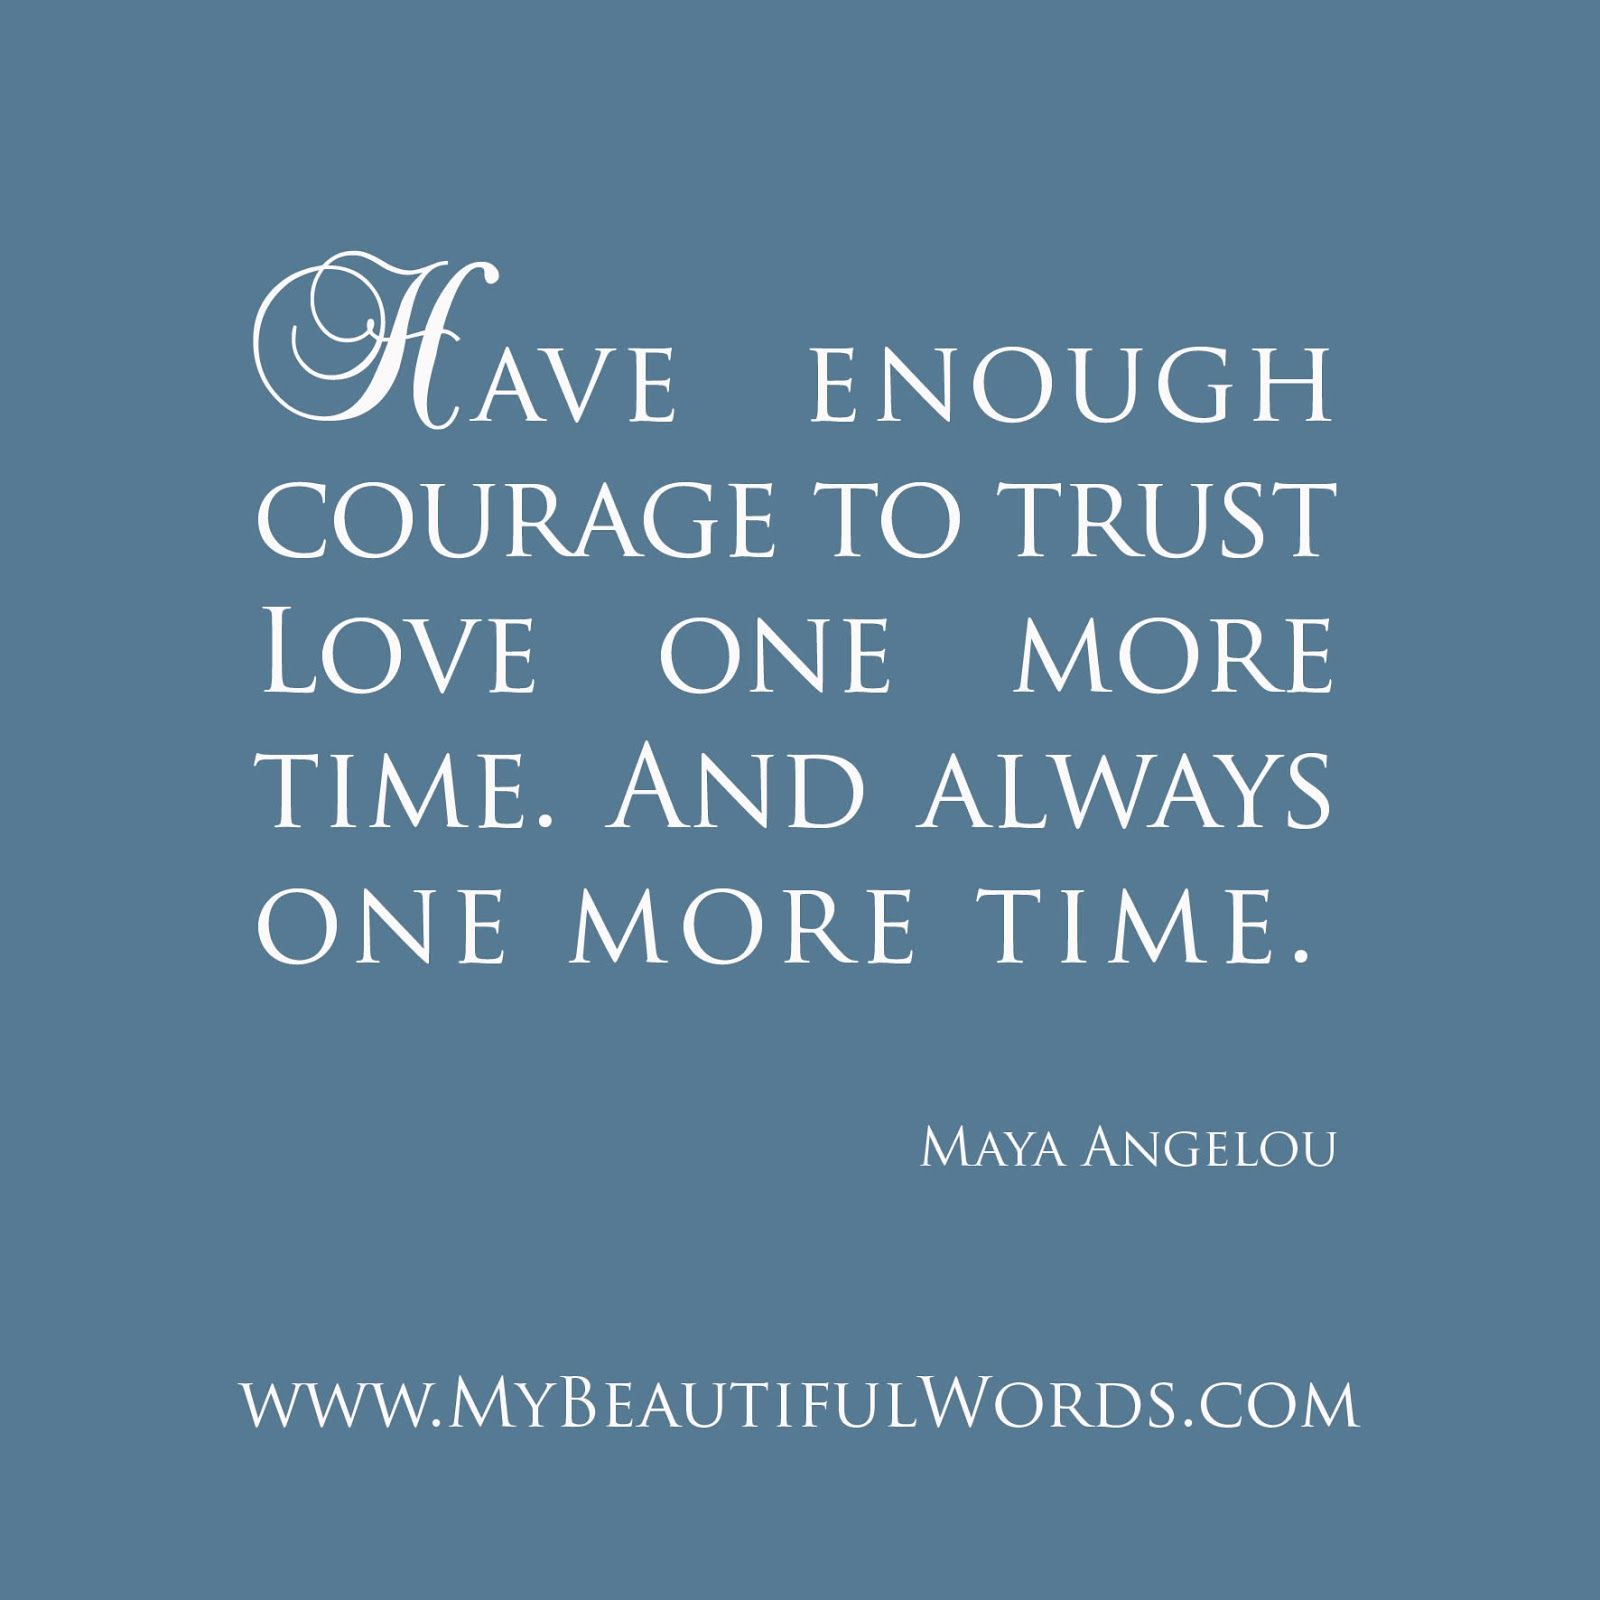 Courageous Quotes Quote Maya Angelou Courage Love  Relationship « Sporadic